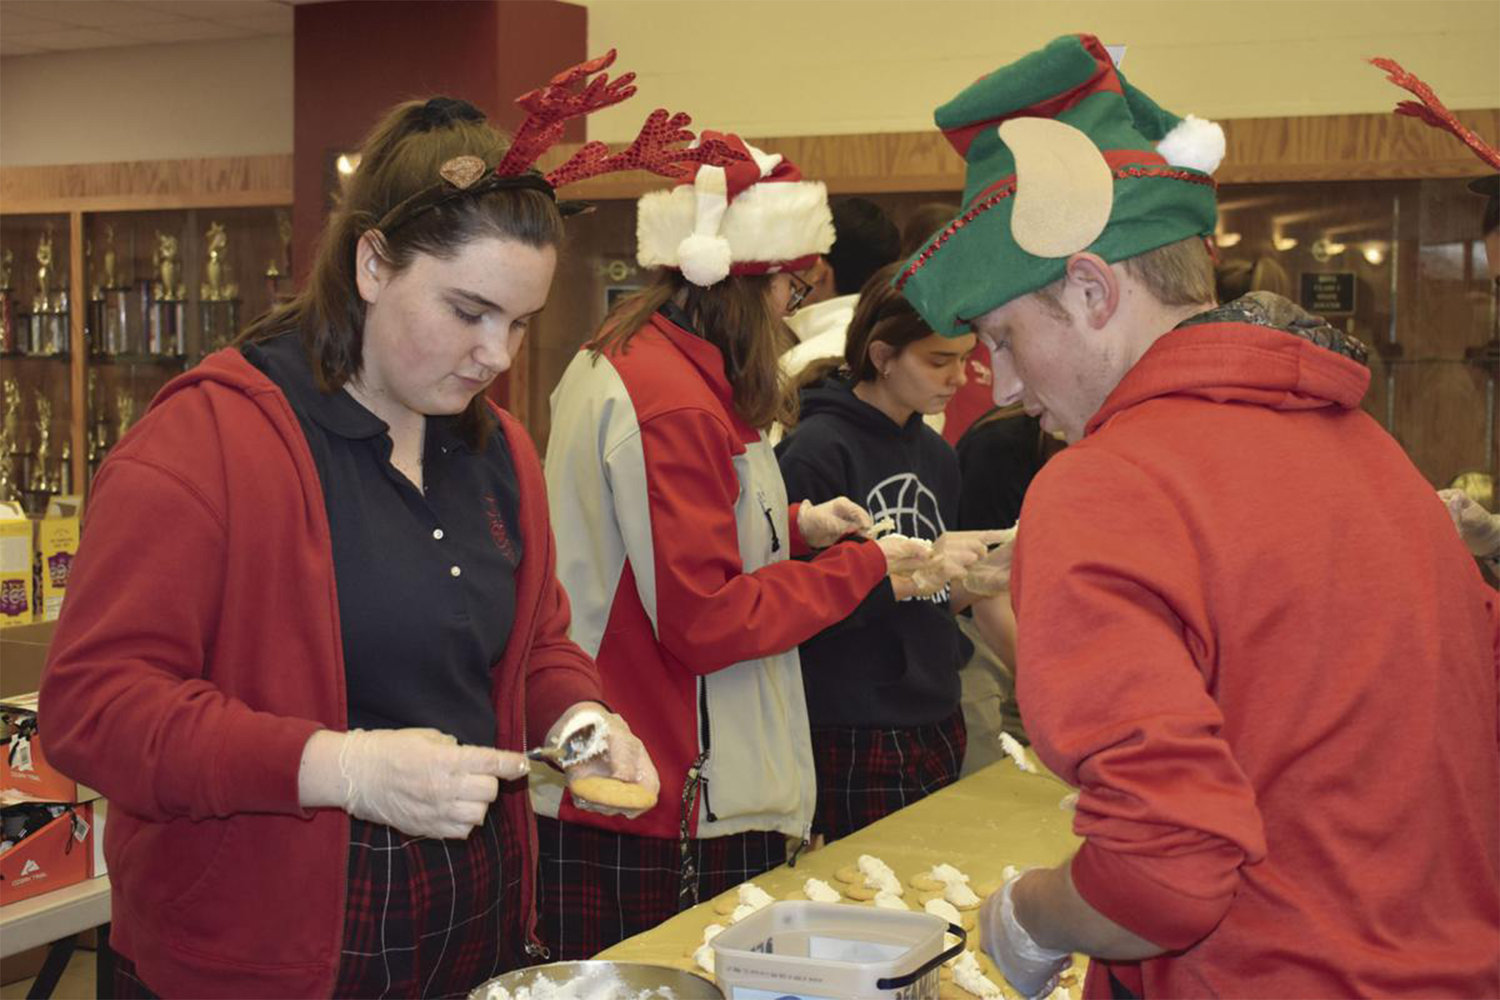 Claire Smeltzer, left, Kelsey Hudson, Caten Lucchesi and Cody Damlo, foreground, help decorate Christmas cookies. They and other members of the SHS Student Council were preparing more than 200 Christmas stockings to be delivered to airmen of the 509th Security Forces at Whiteman Air Force Base in Knob Noster.